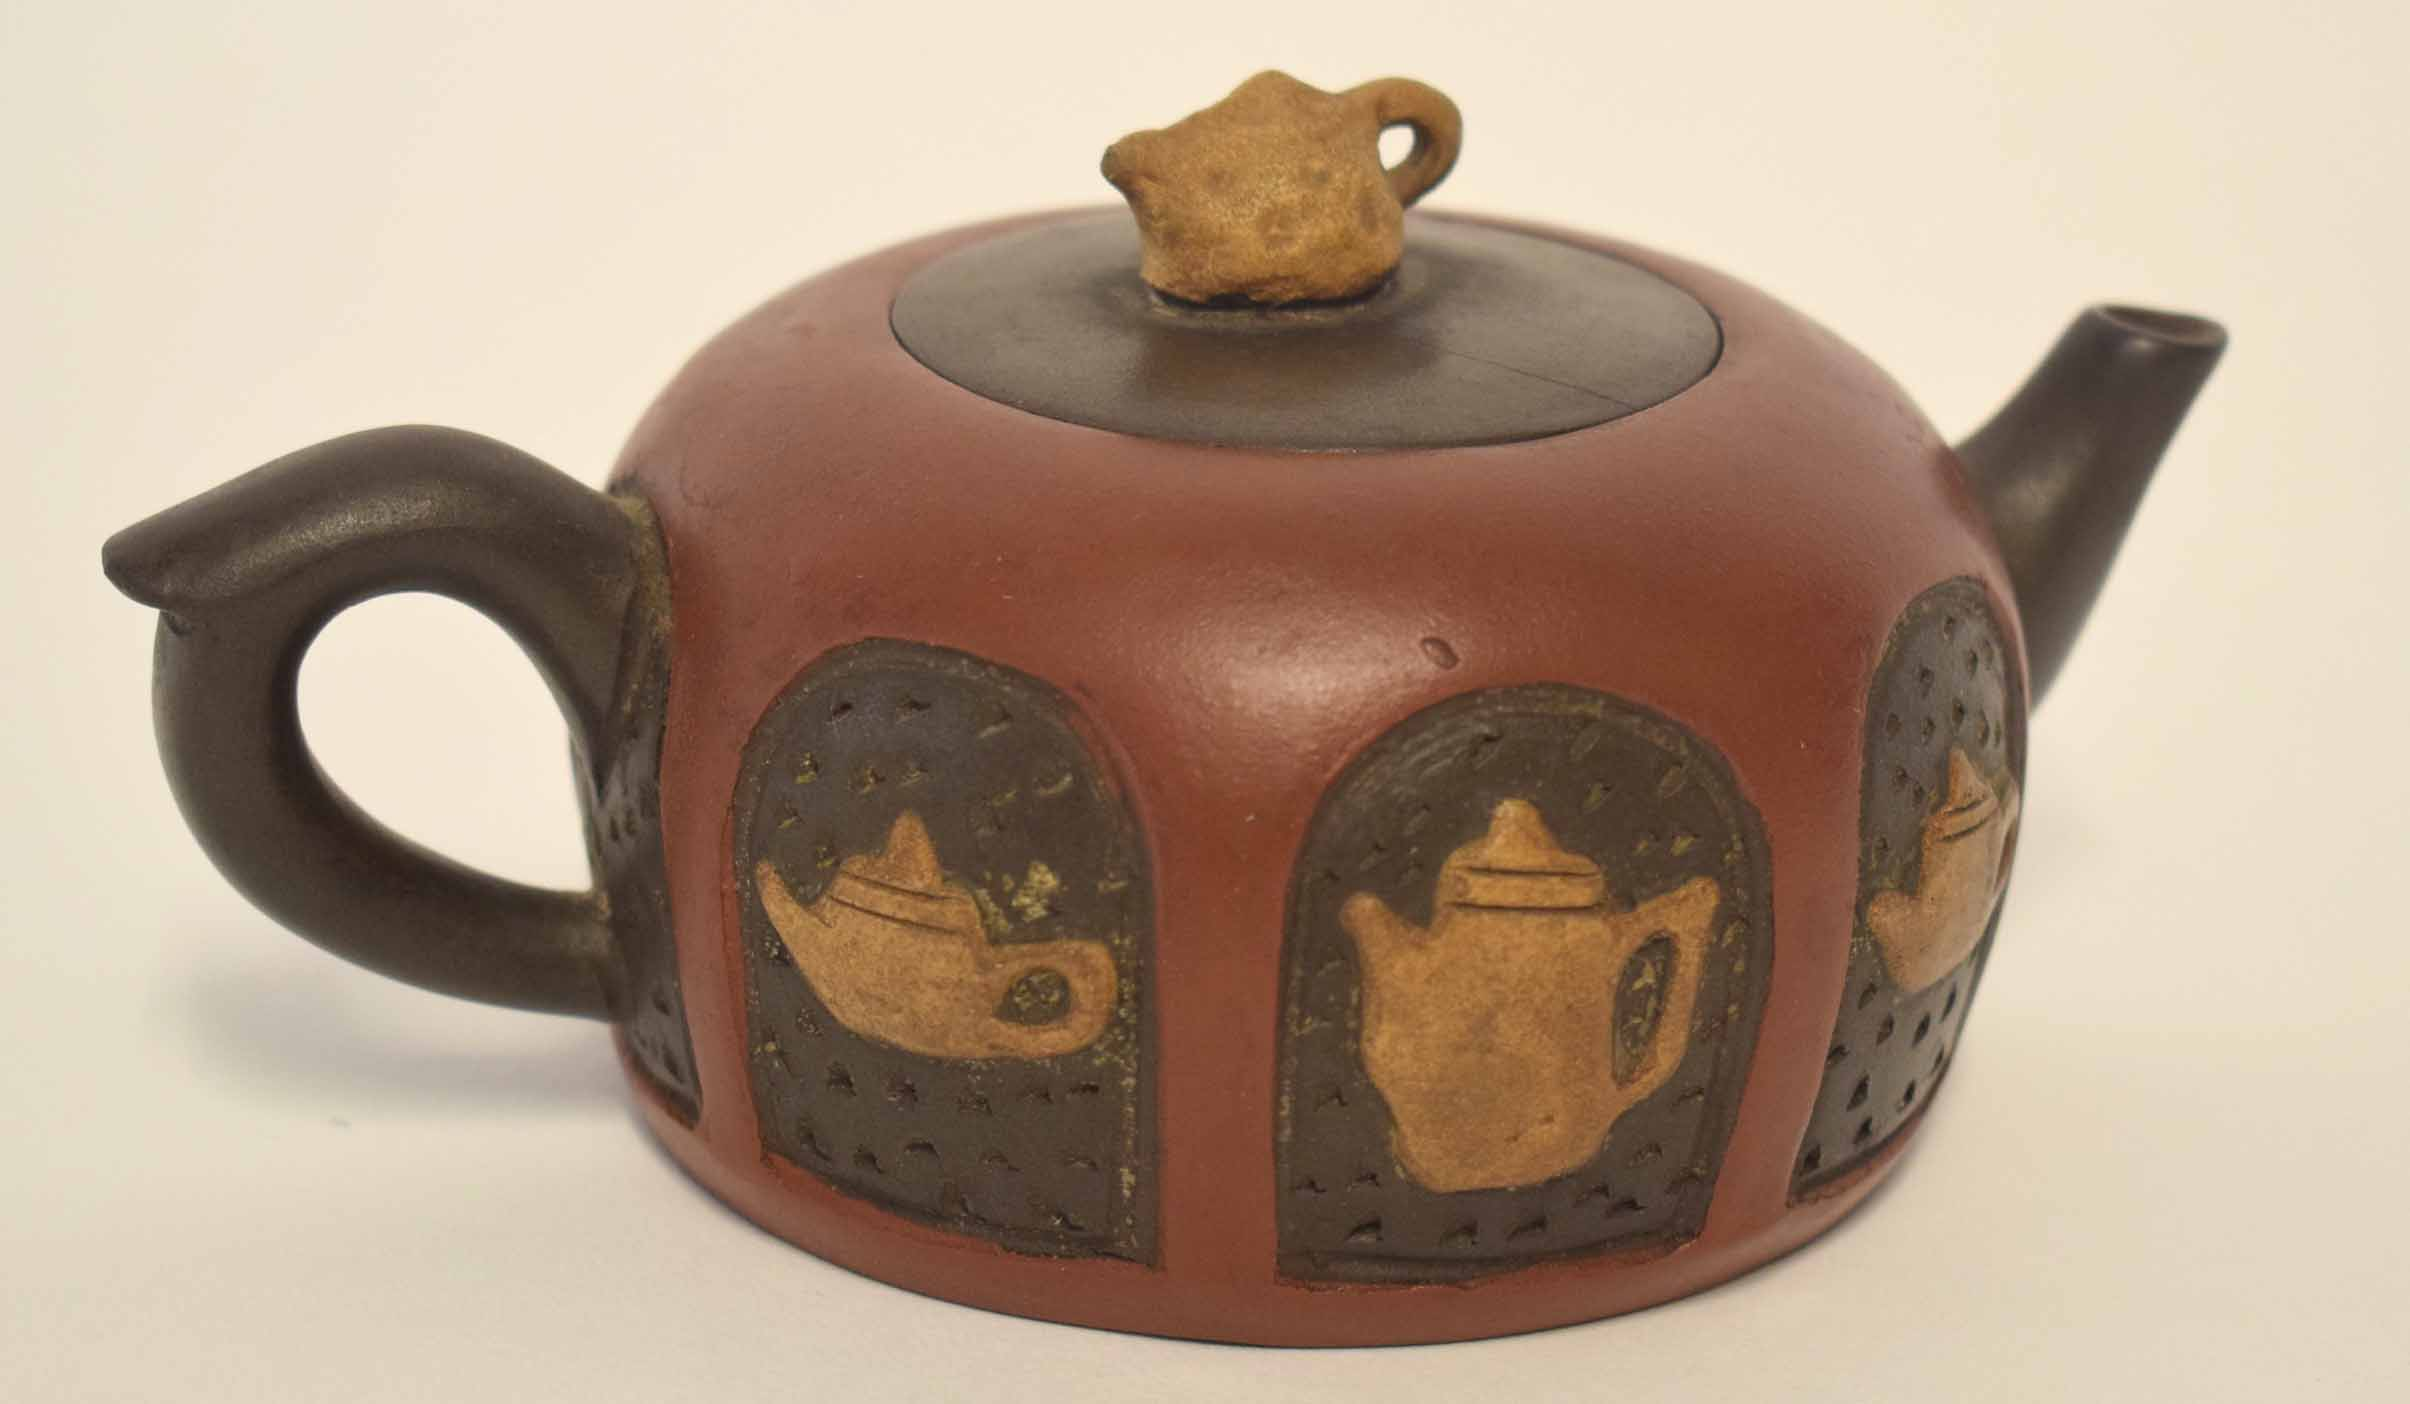 Lot 15 - Chinese red ware teapot and cover, the body decorated with tea and coffee pot motifs, the cover with